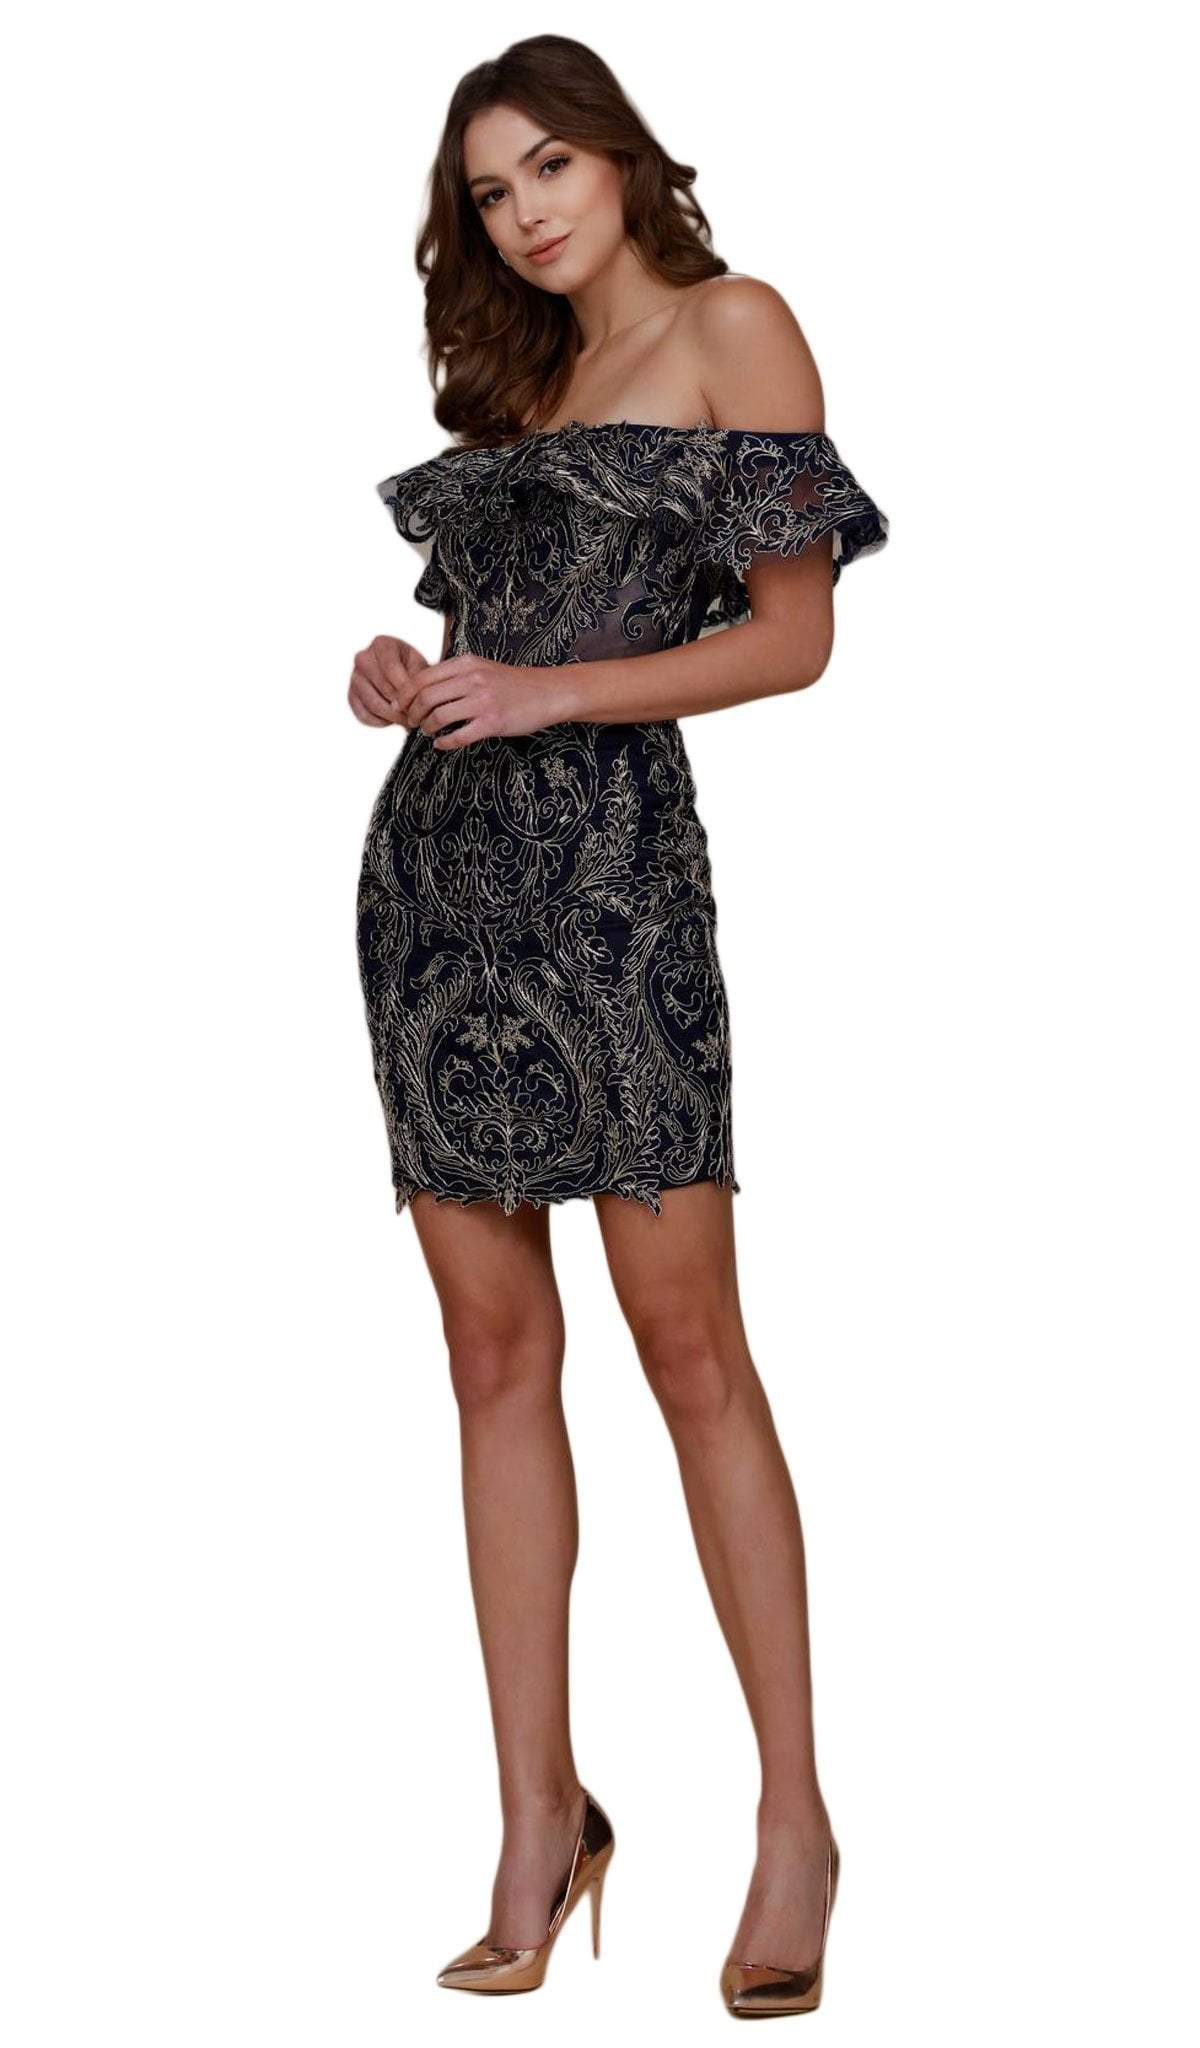 Nox Anabel - A611SC Ruffled Off-Shoulder Embroidered Fitted Dress